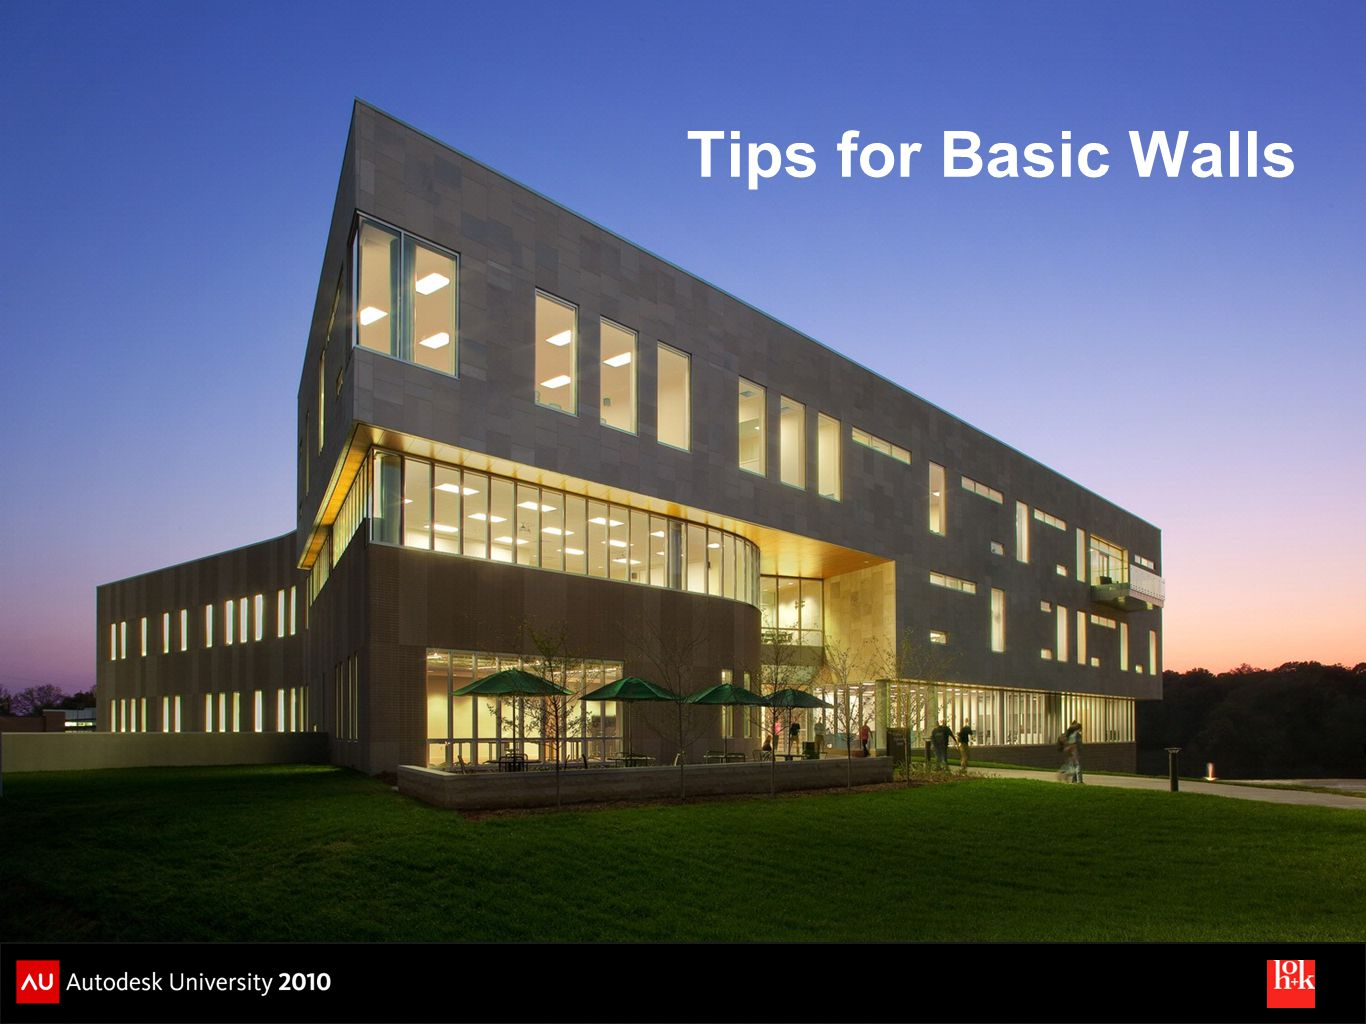 Tips for Basic Walls